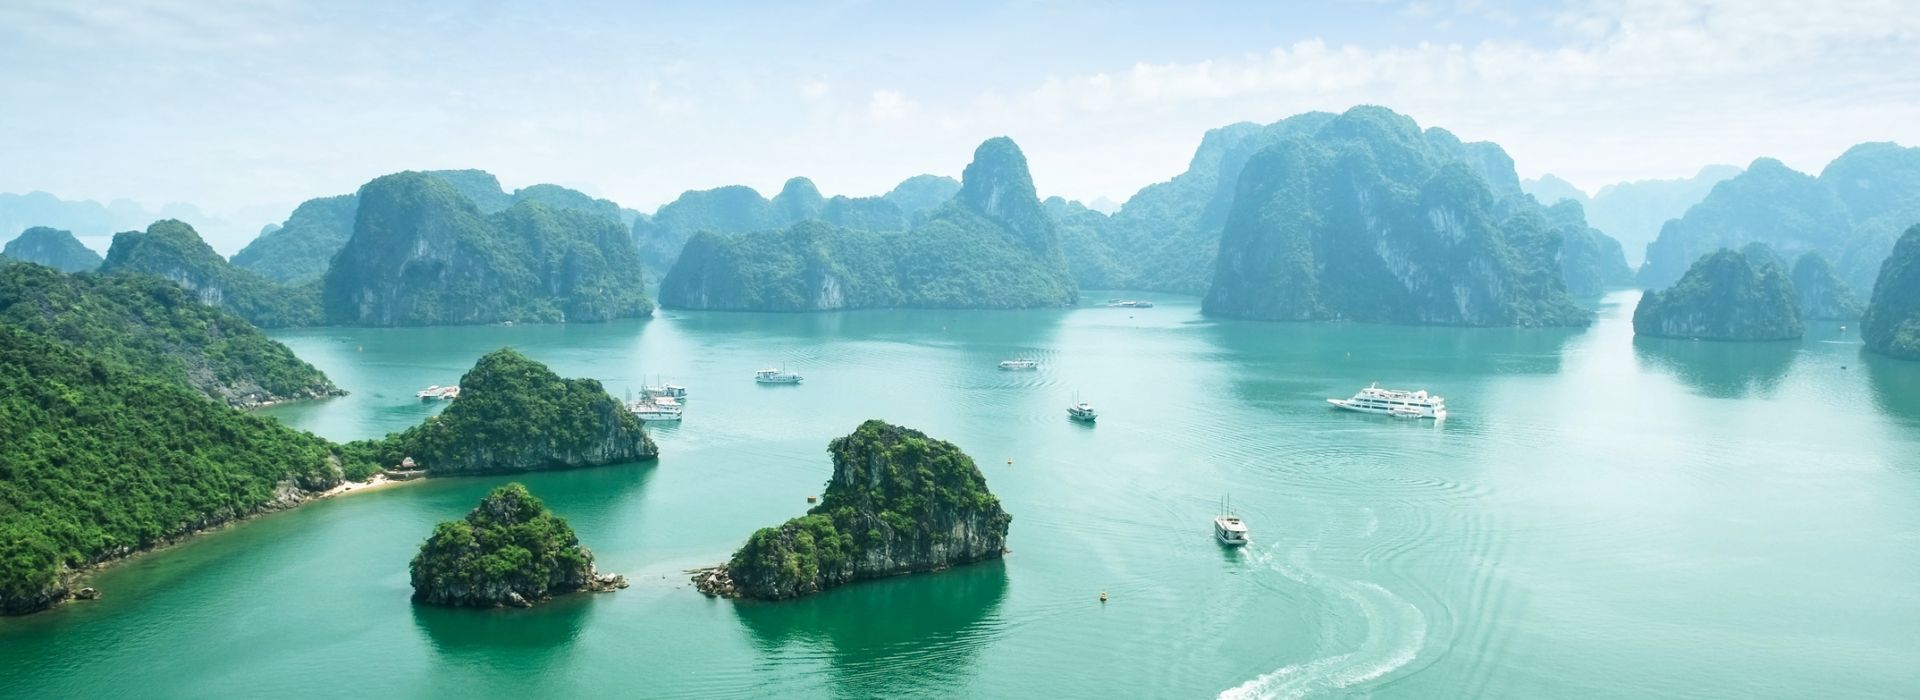 Vietnam Tours and Trips in Vietnam